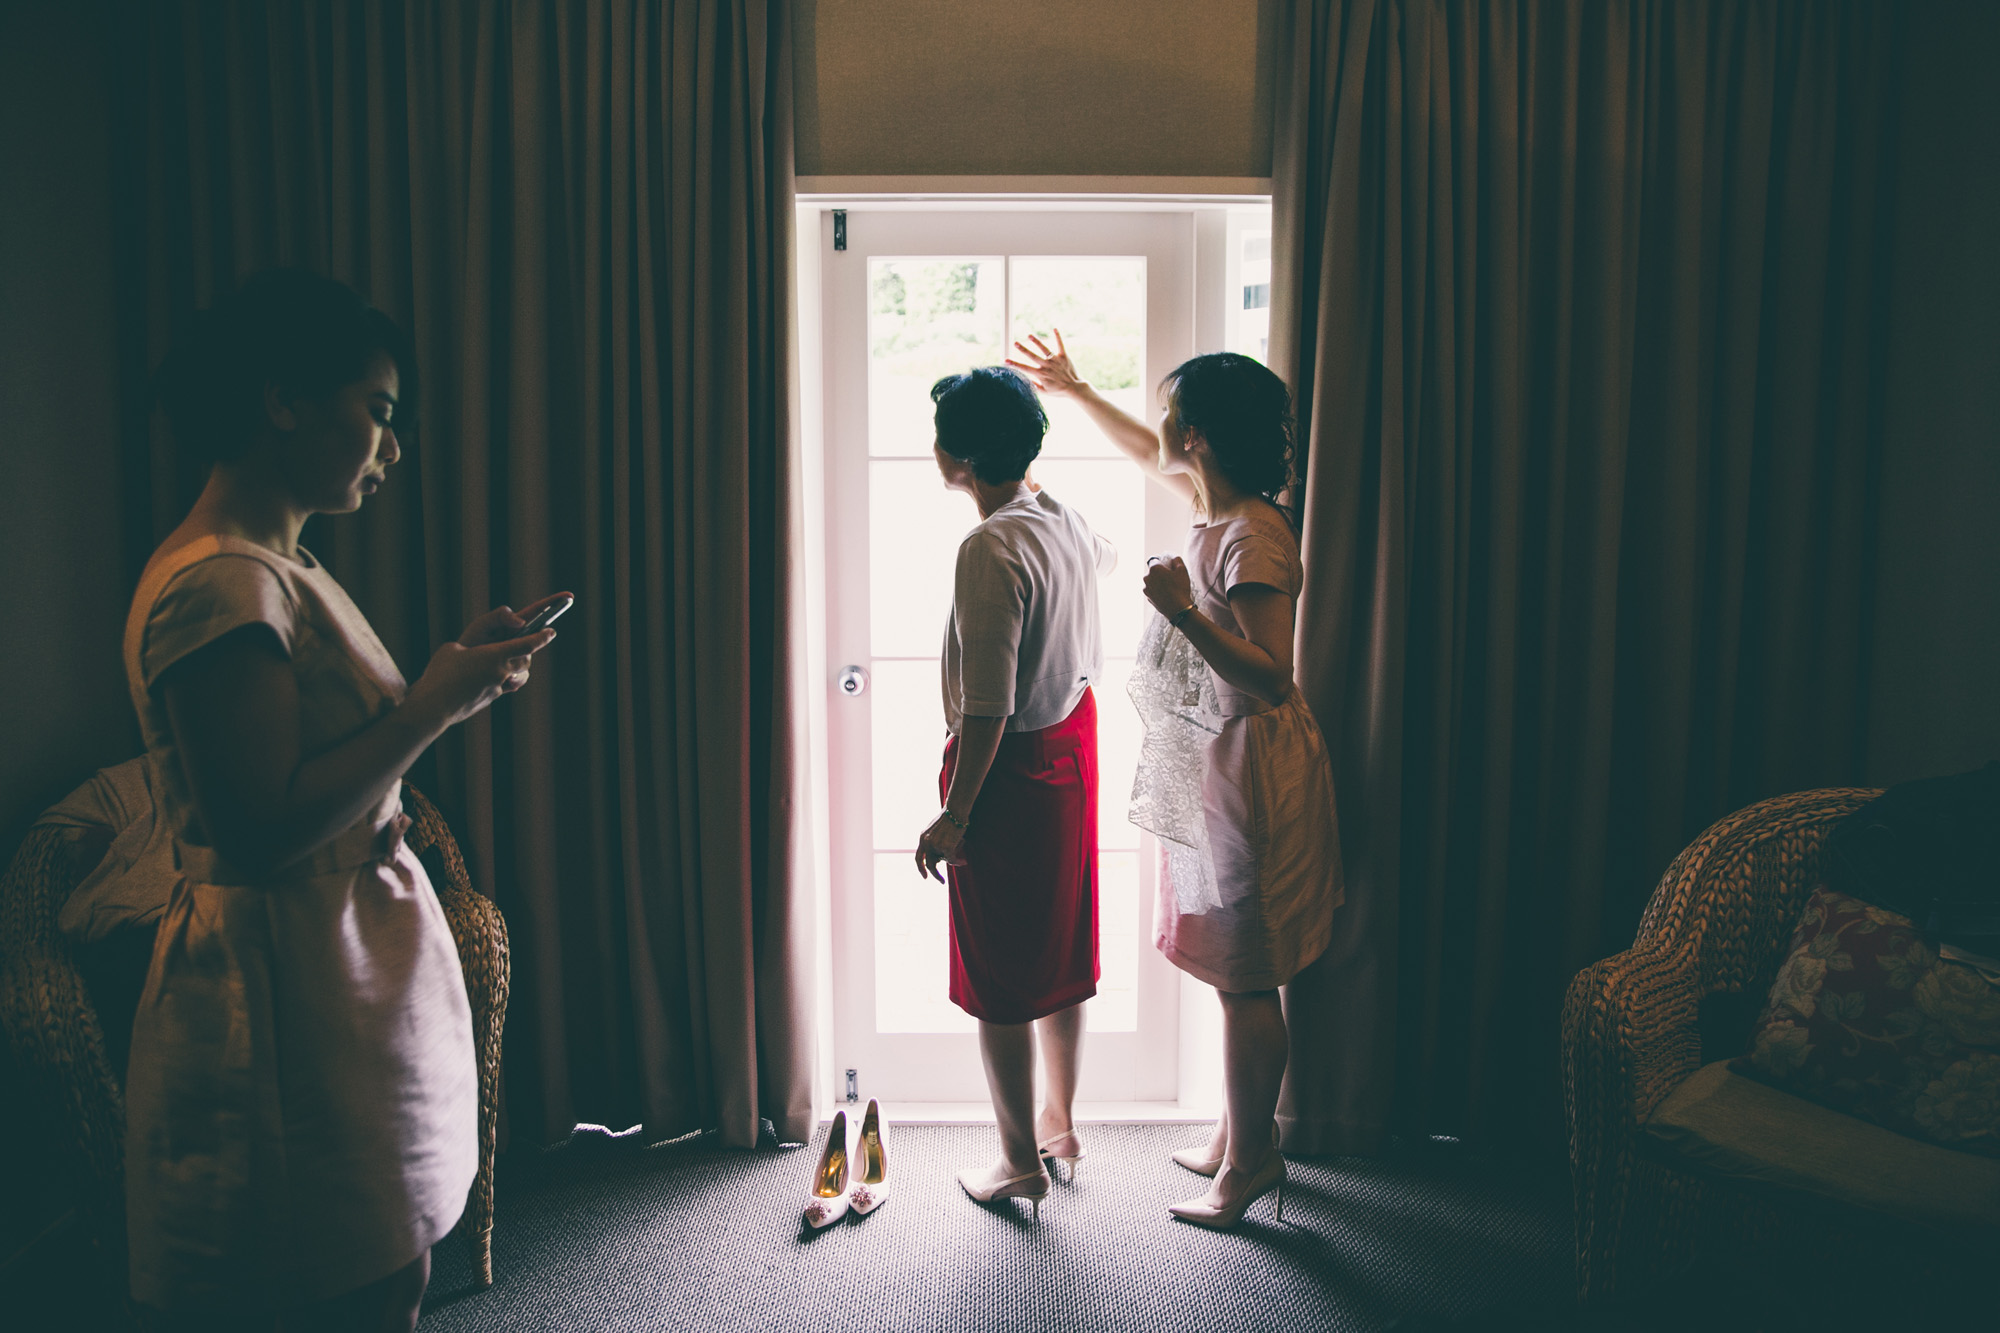 Sarah_McEvoy_Wellington_Wedding_Photographer_029.jpg